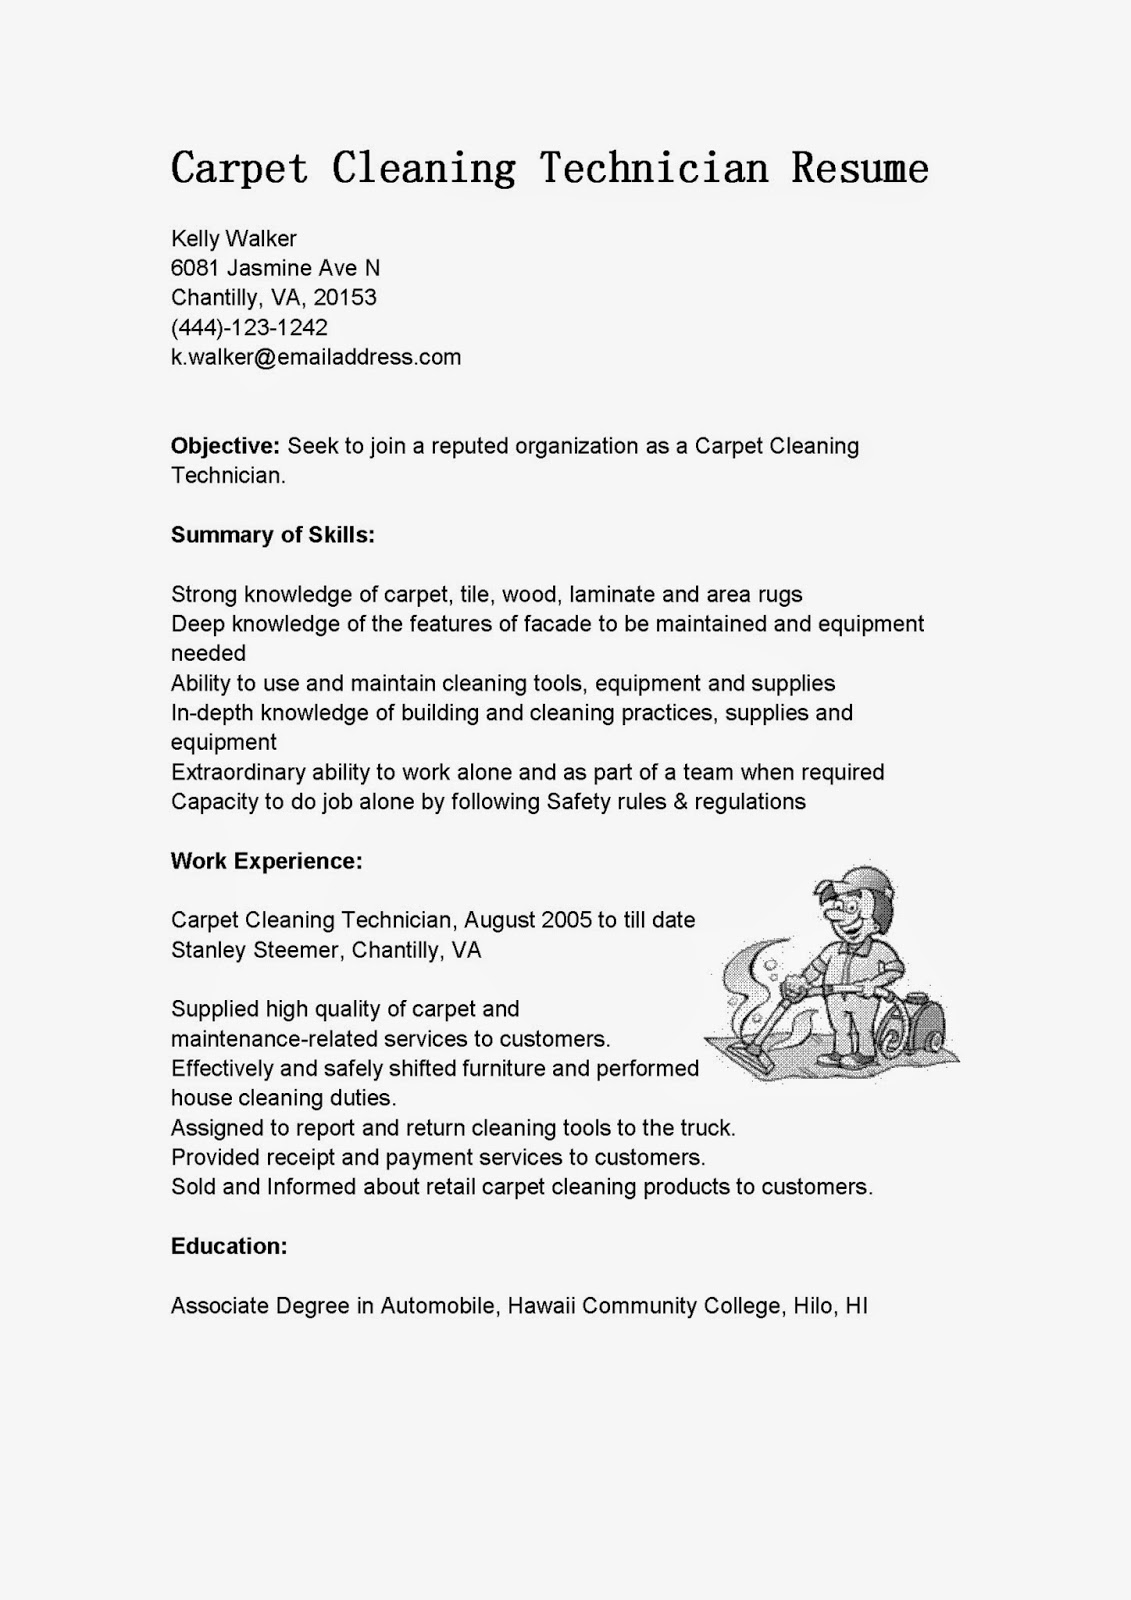 Office Assistant Duties Resume Job Resume Housekeeping Resume Objective Sample  Housekeeping Resume Skills Housekeeping Resume Skills  Sample Resume For Housekeeping